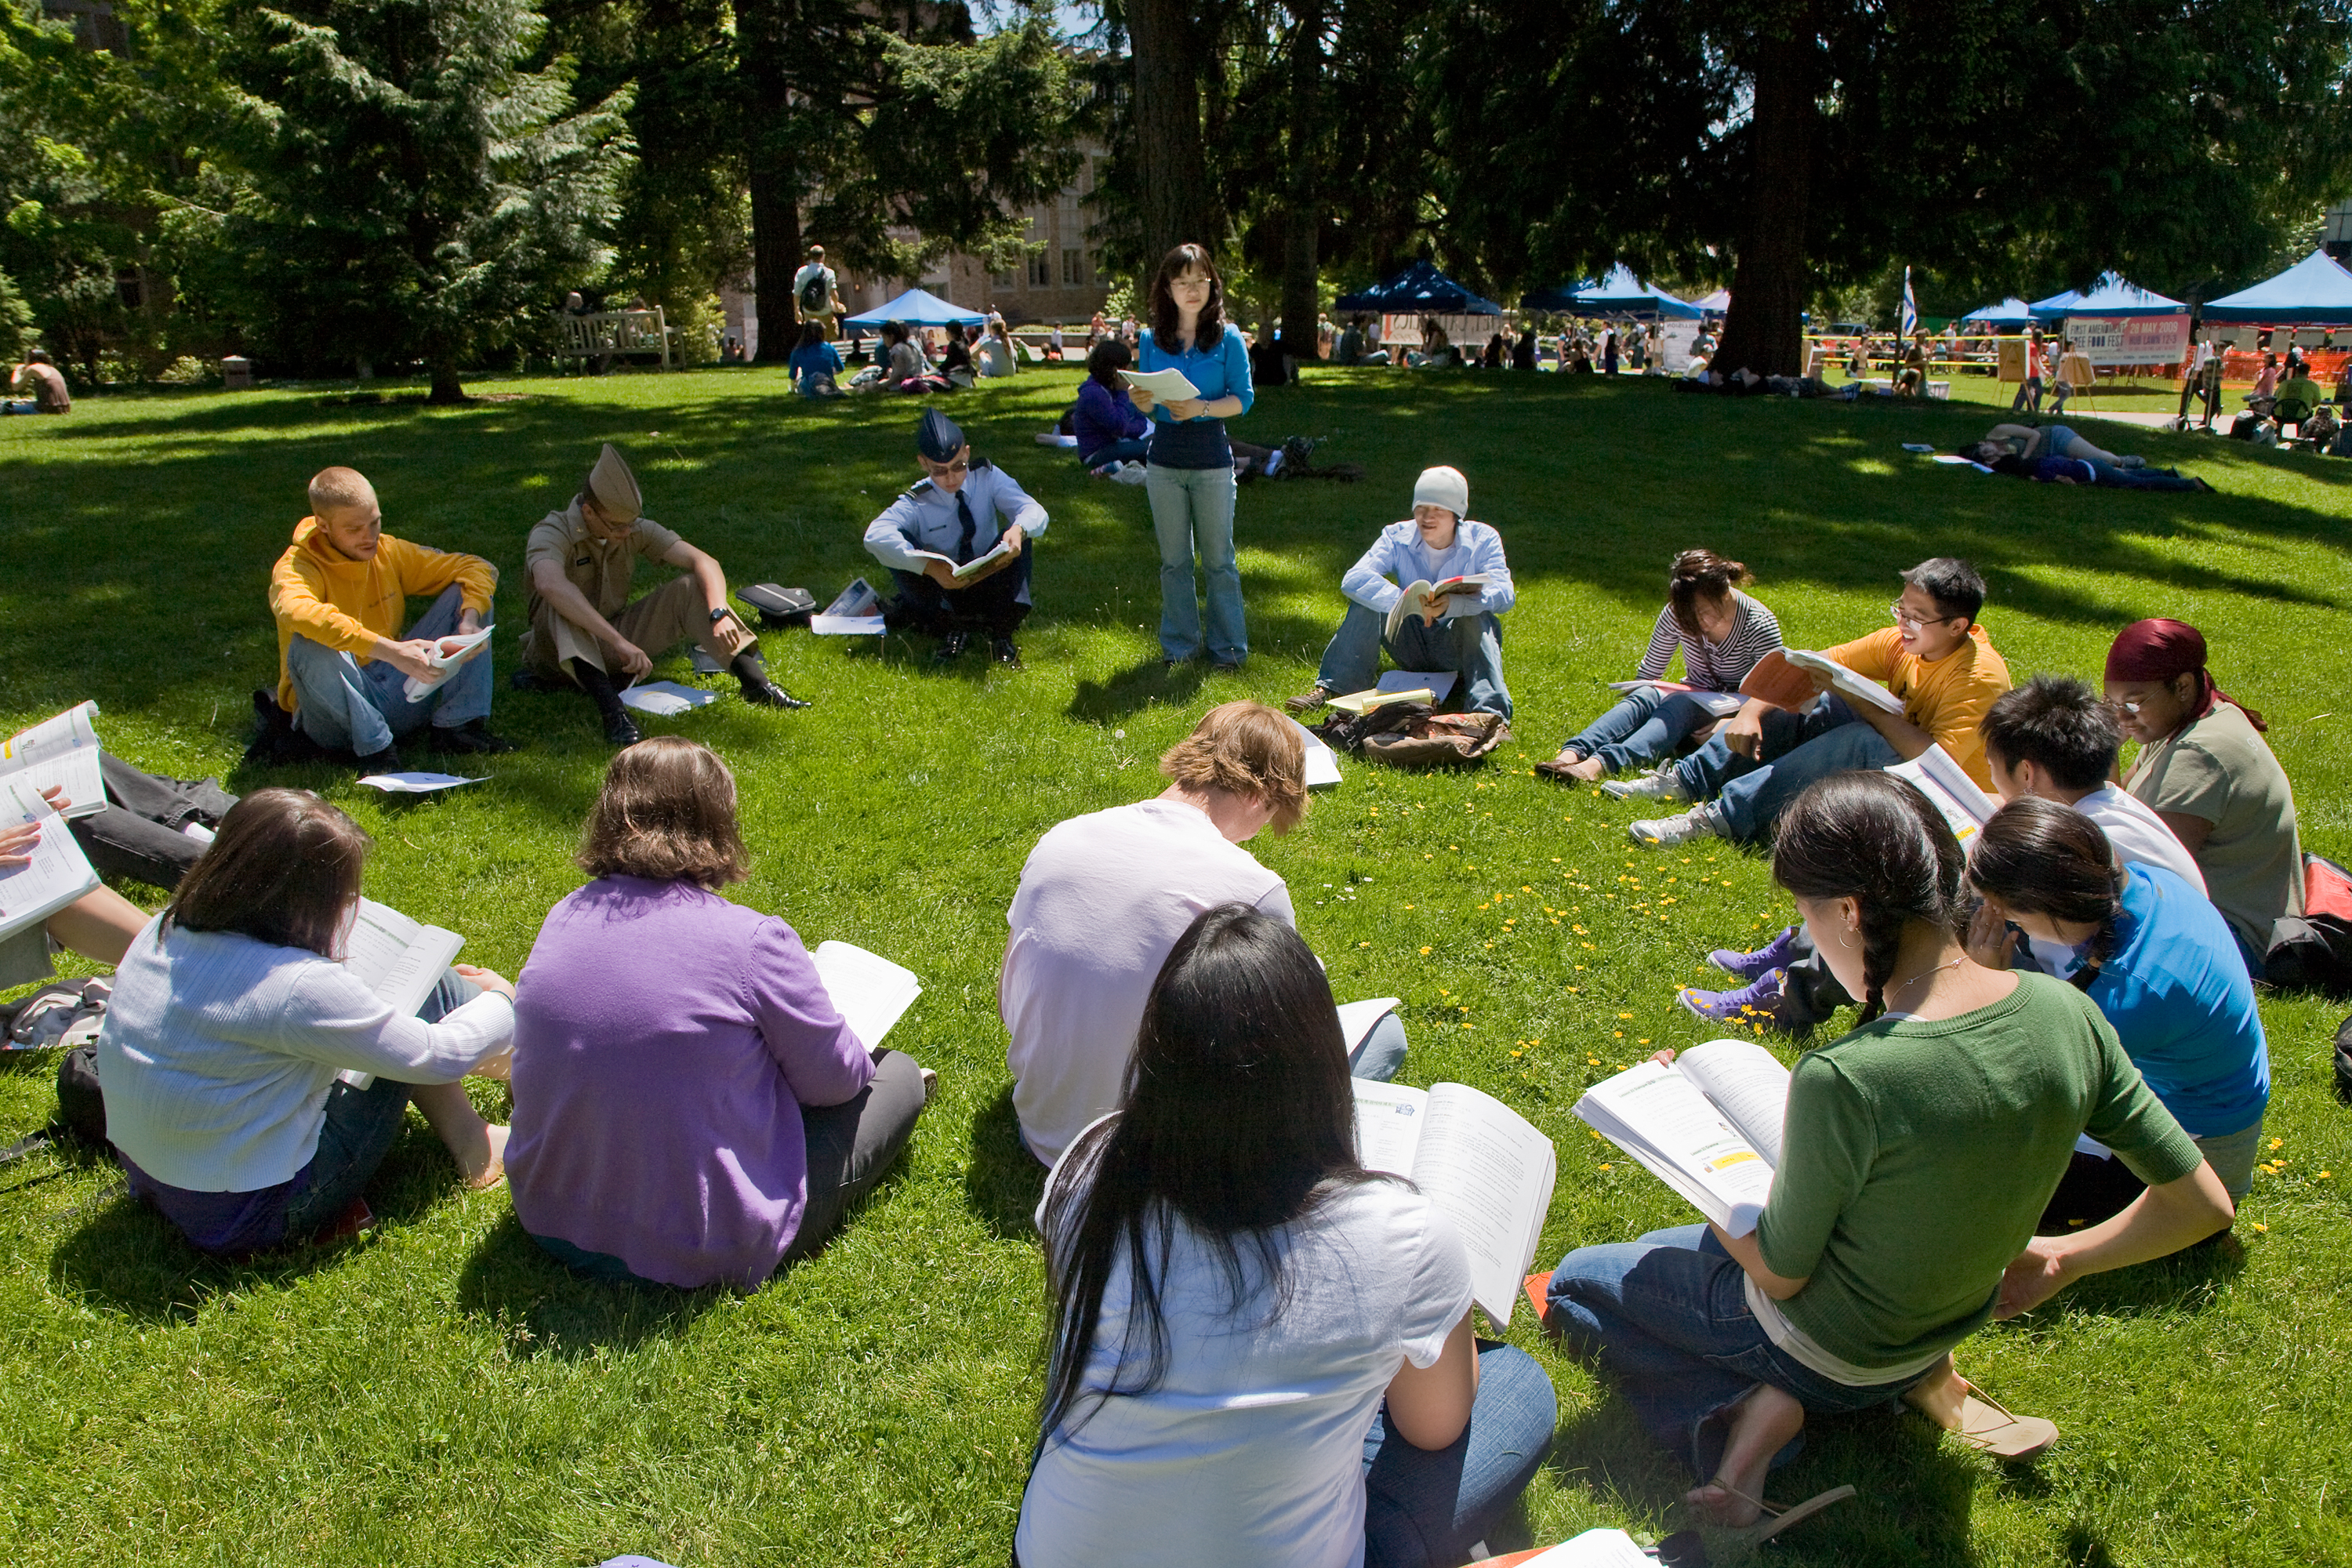 University of Washington class sitting on a lawn. Photo by Doug Plummer.